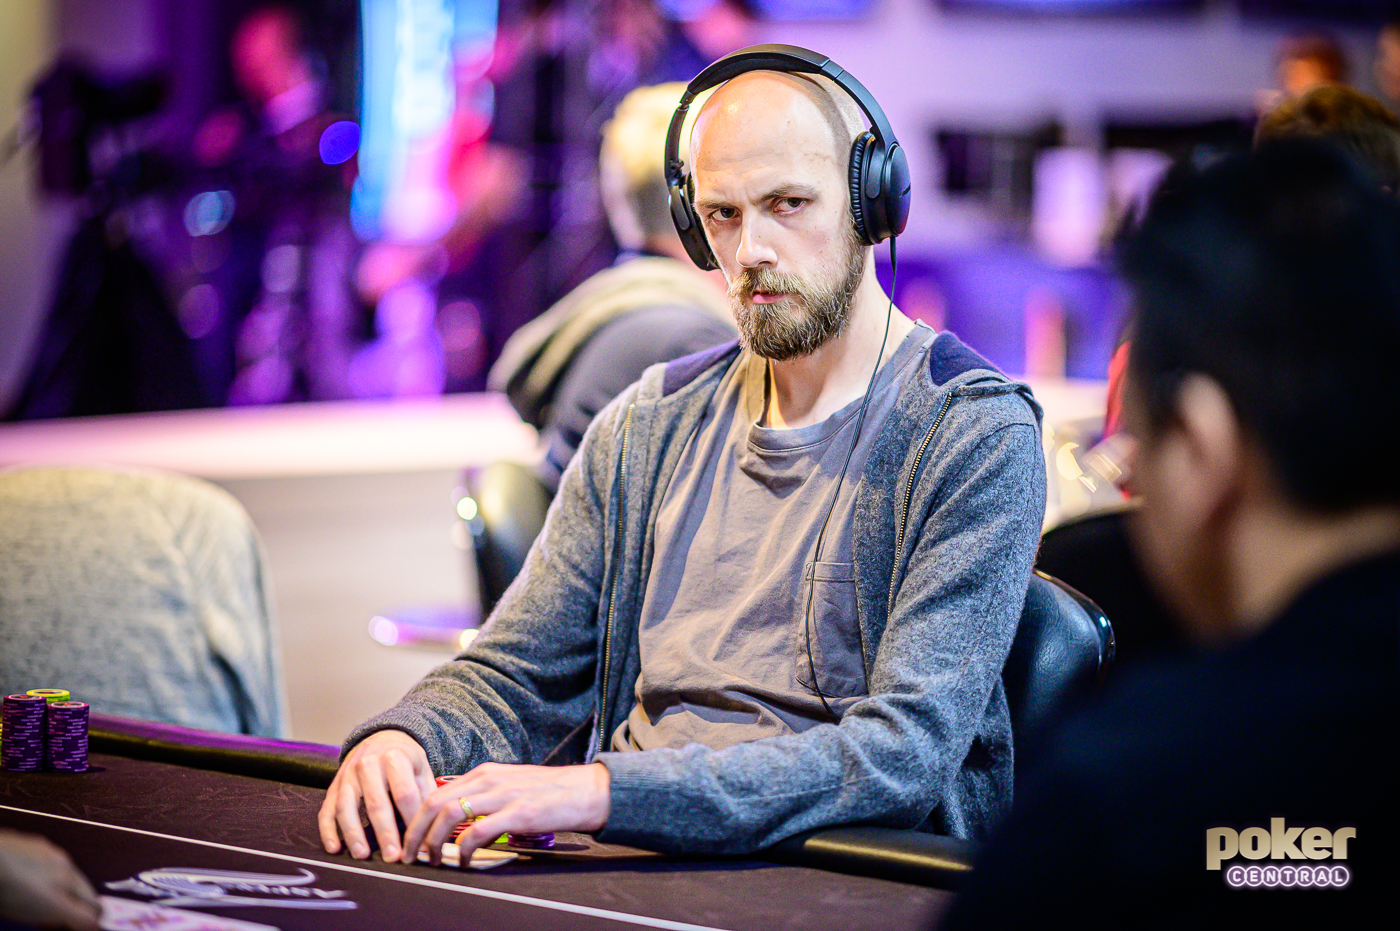 Stephen Chidwick looks for his first British Poker Open title on PokerGO.